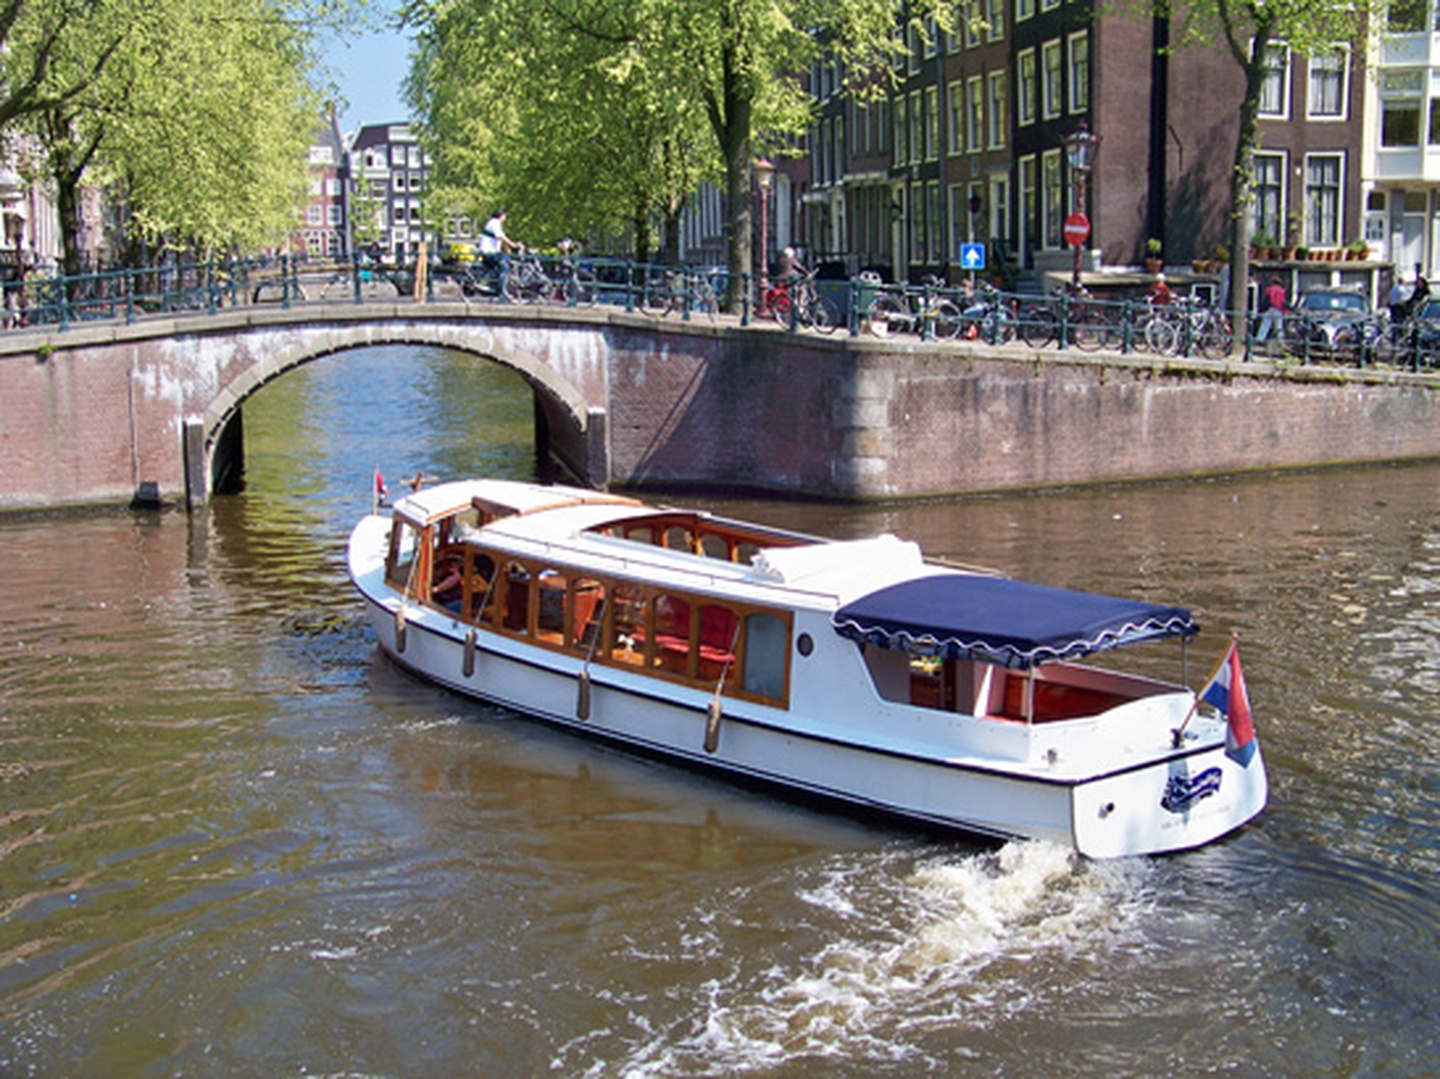 Amsterdam corporate event venues Bateau 't Smidtje - Fairboat Mona Lisa image 11